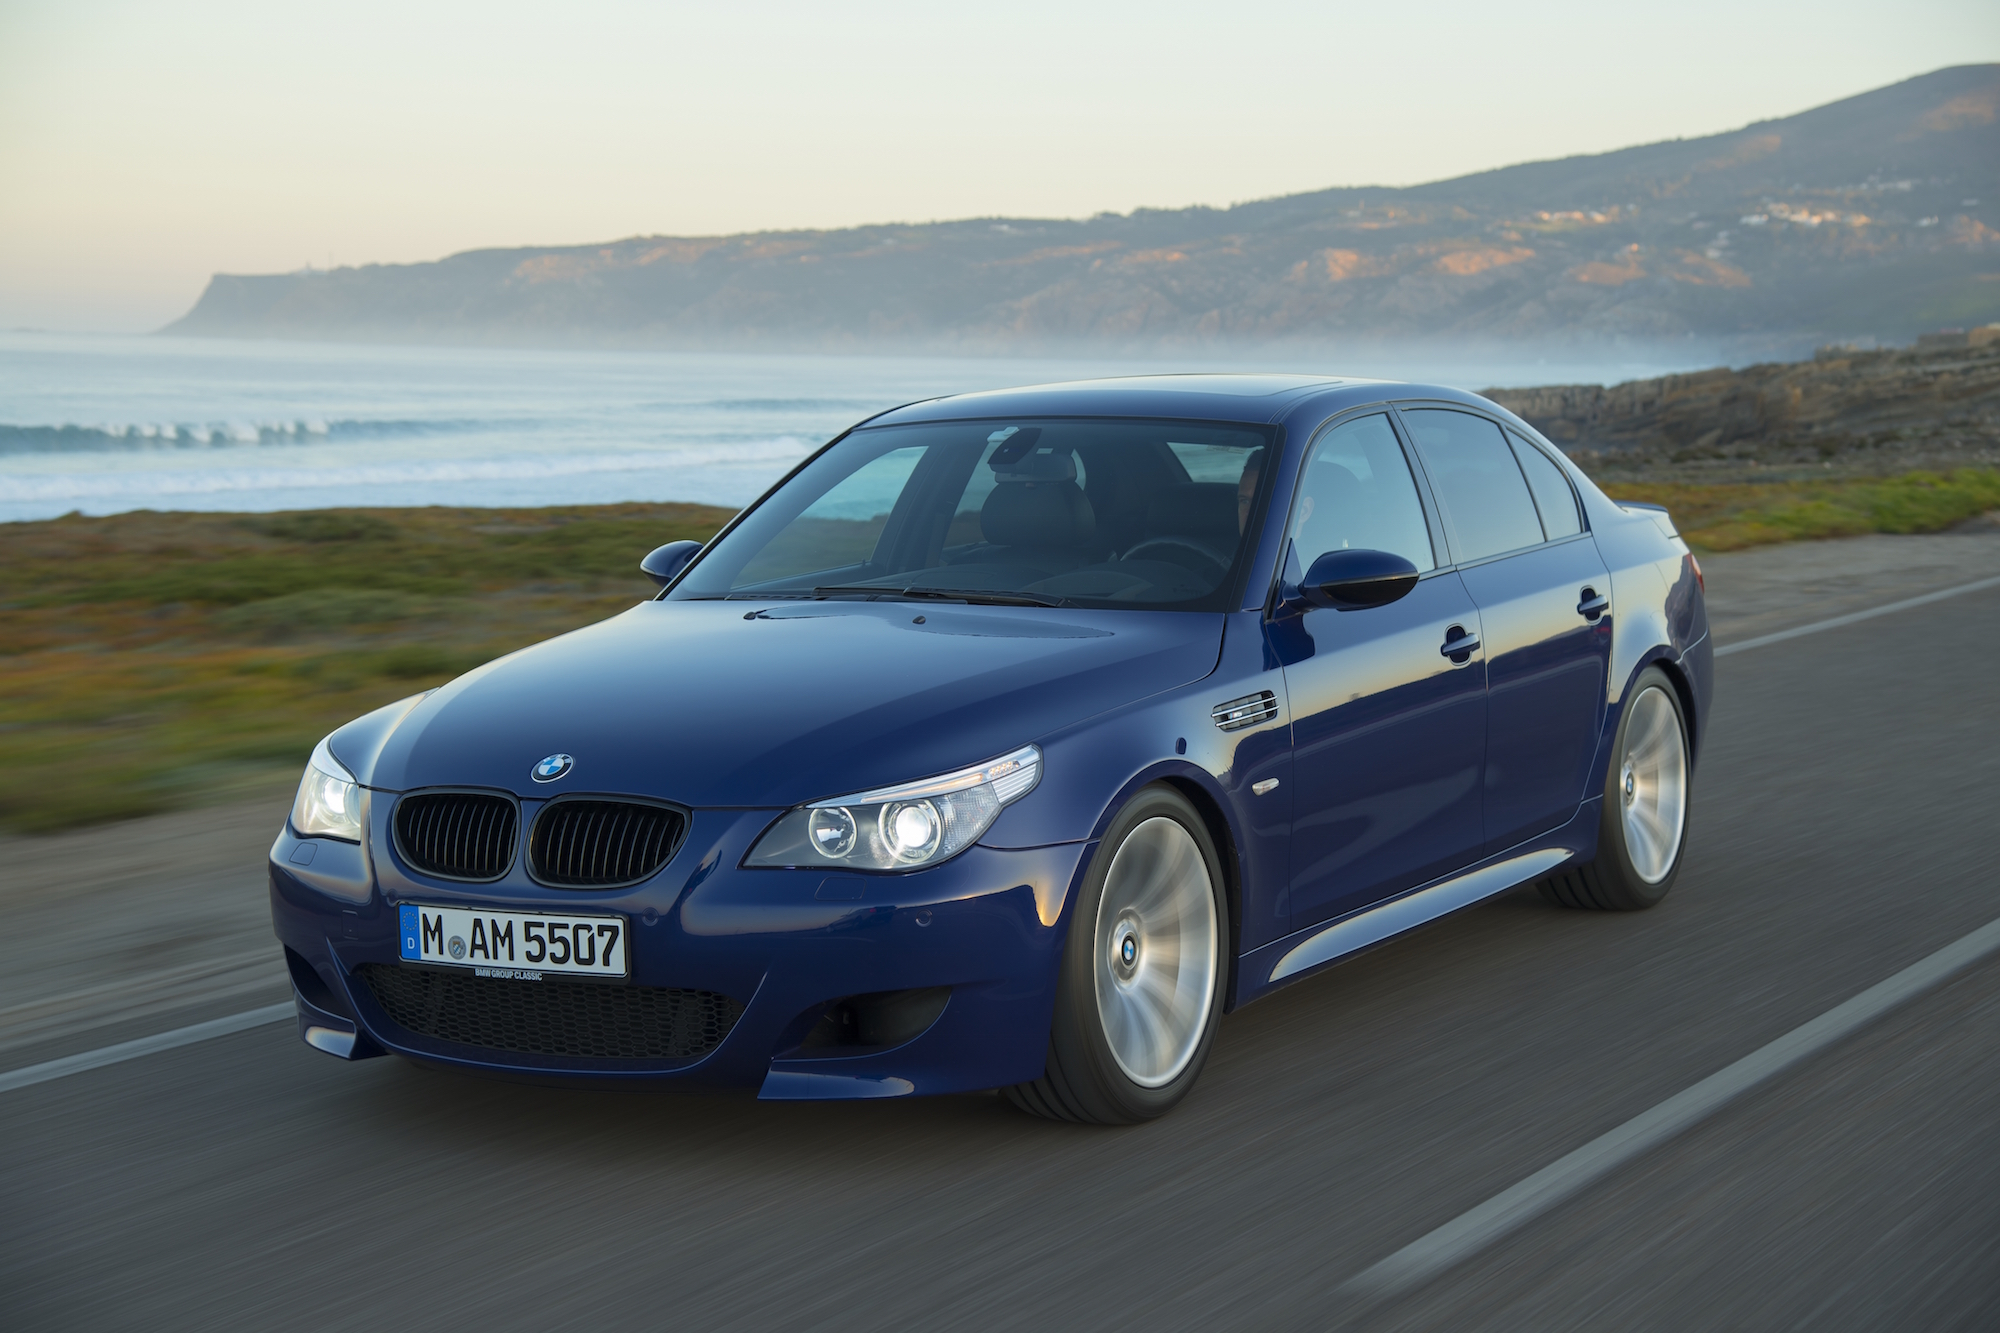 2005 bmw e60 m5 exhaust notes canadian auto review. Black Bedroom Furniture Sets. Home Design Ideas